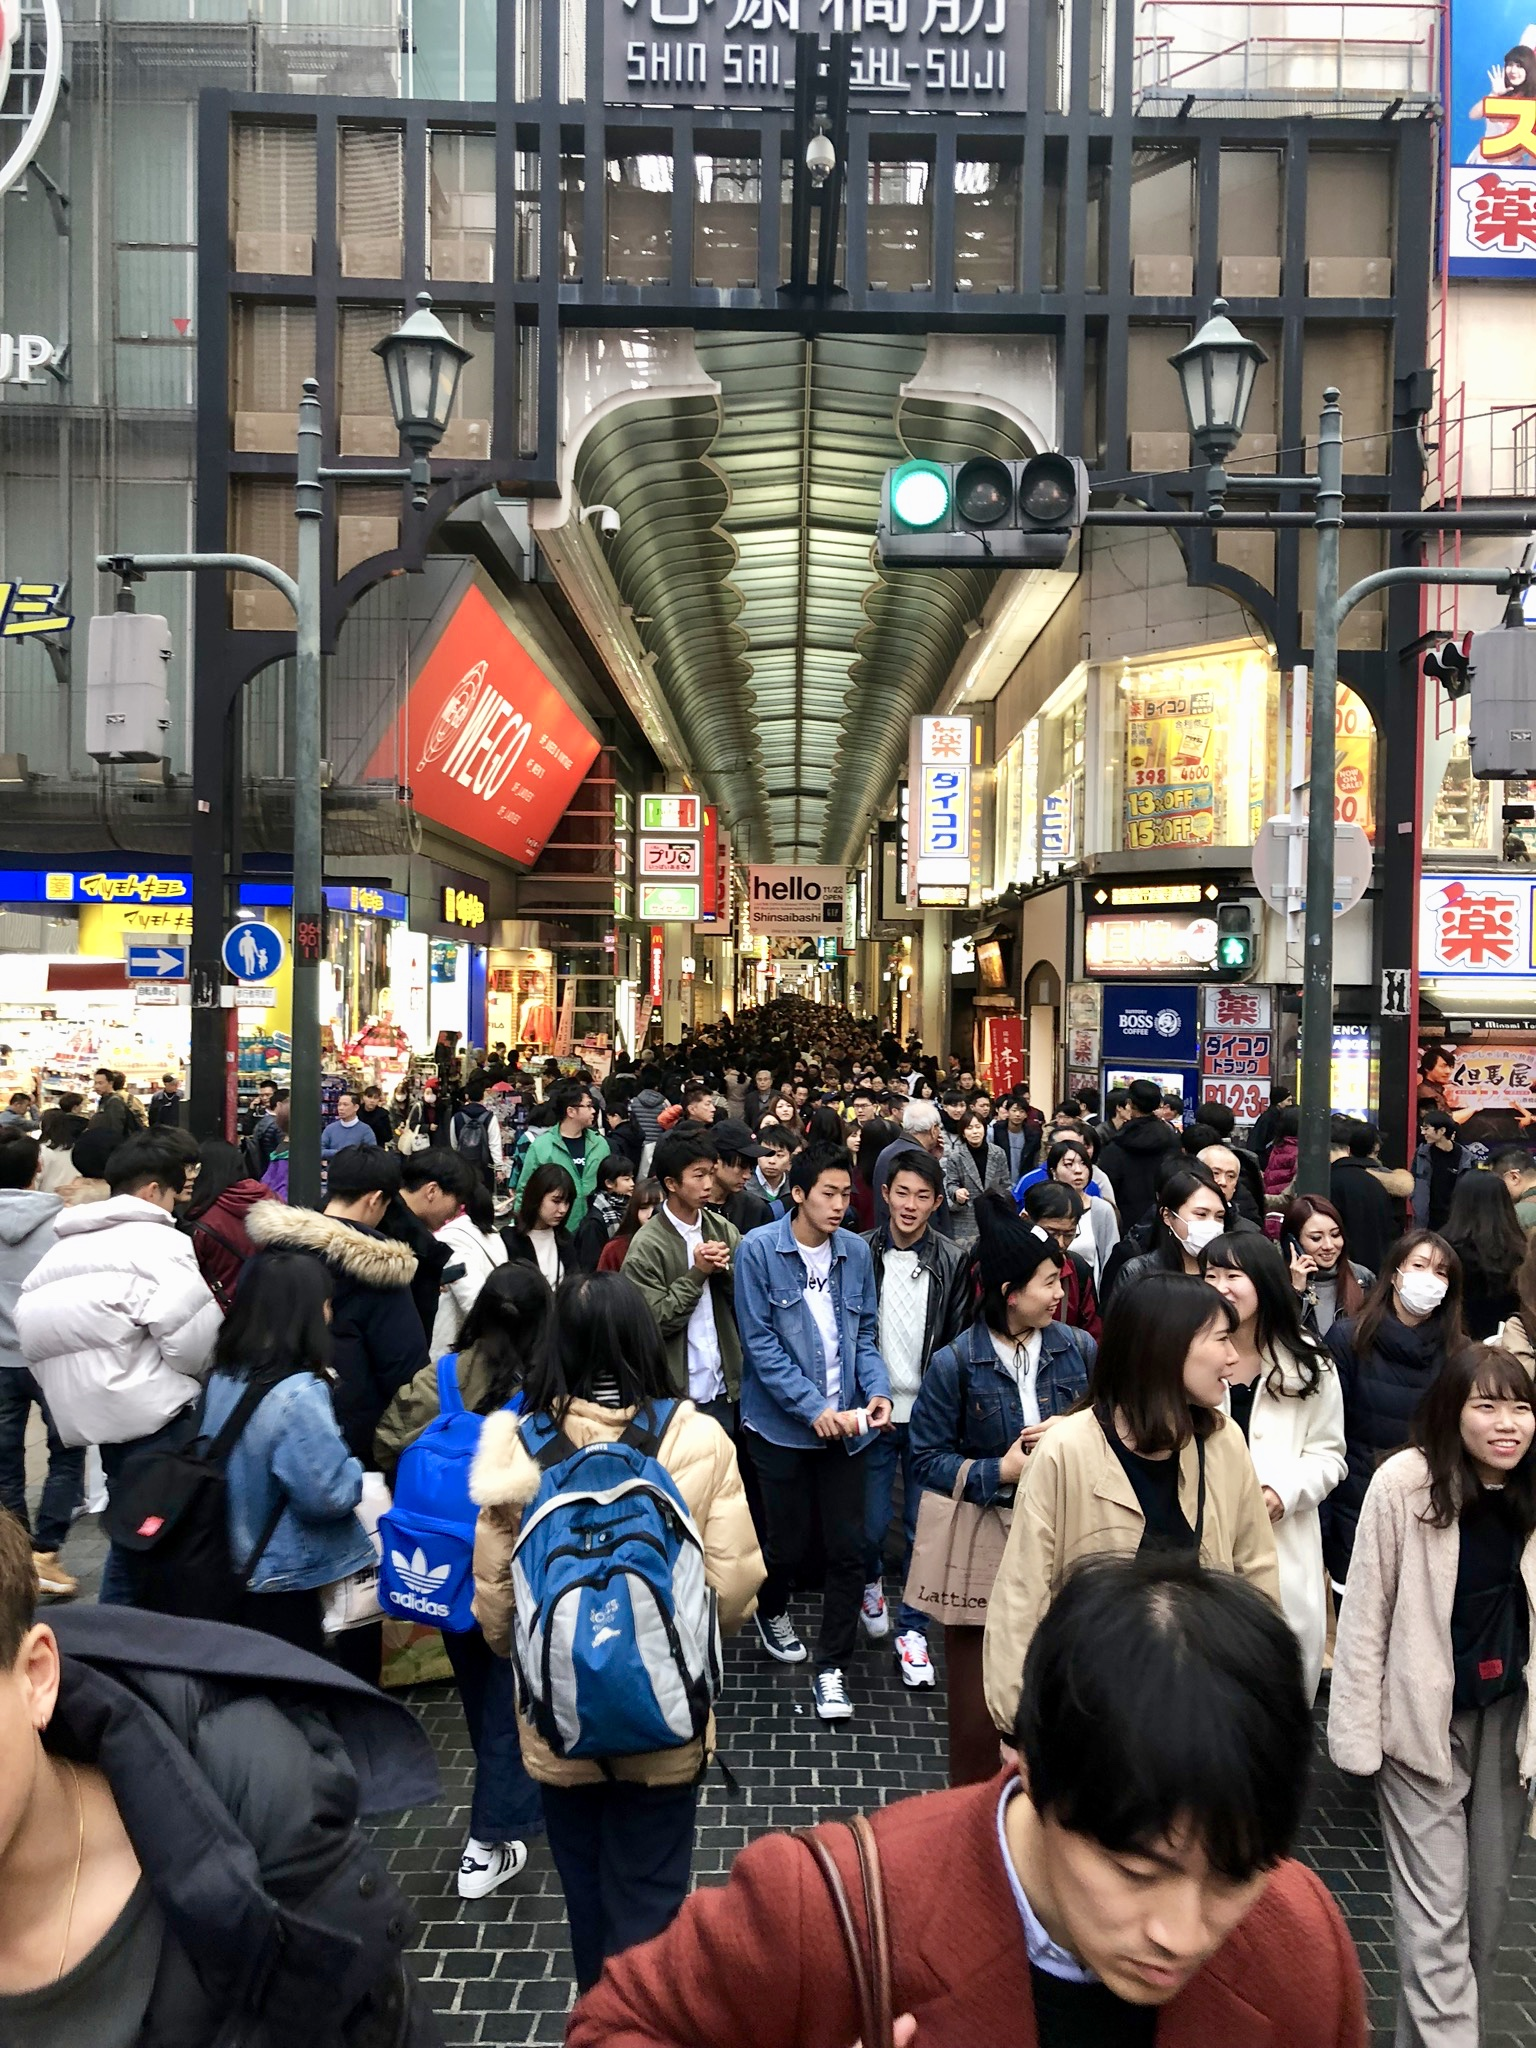 Swimming through the crowds in Osaka